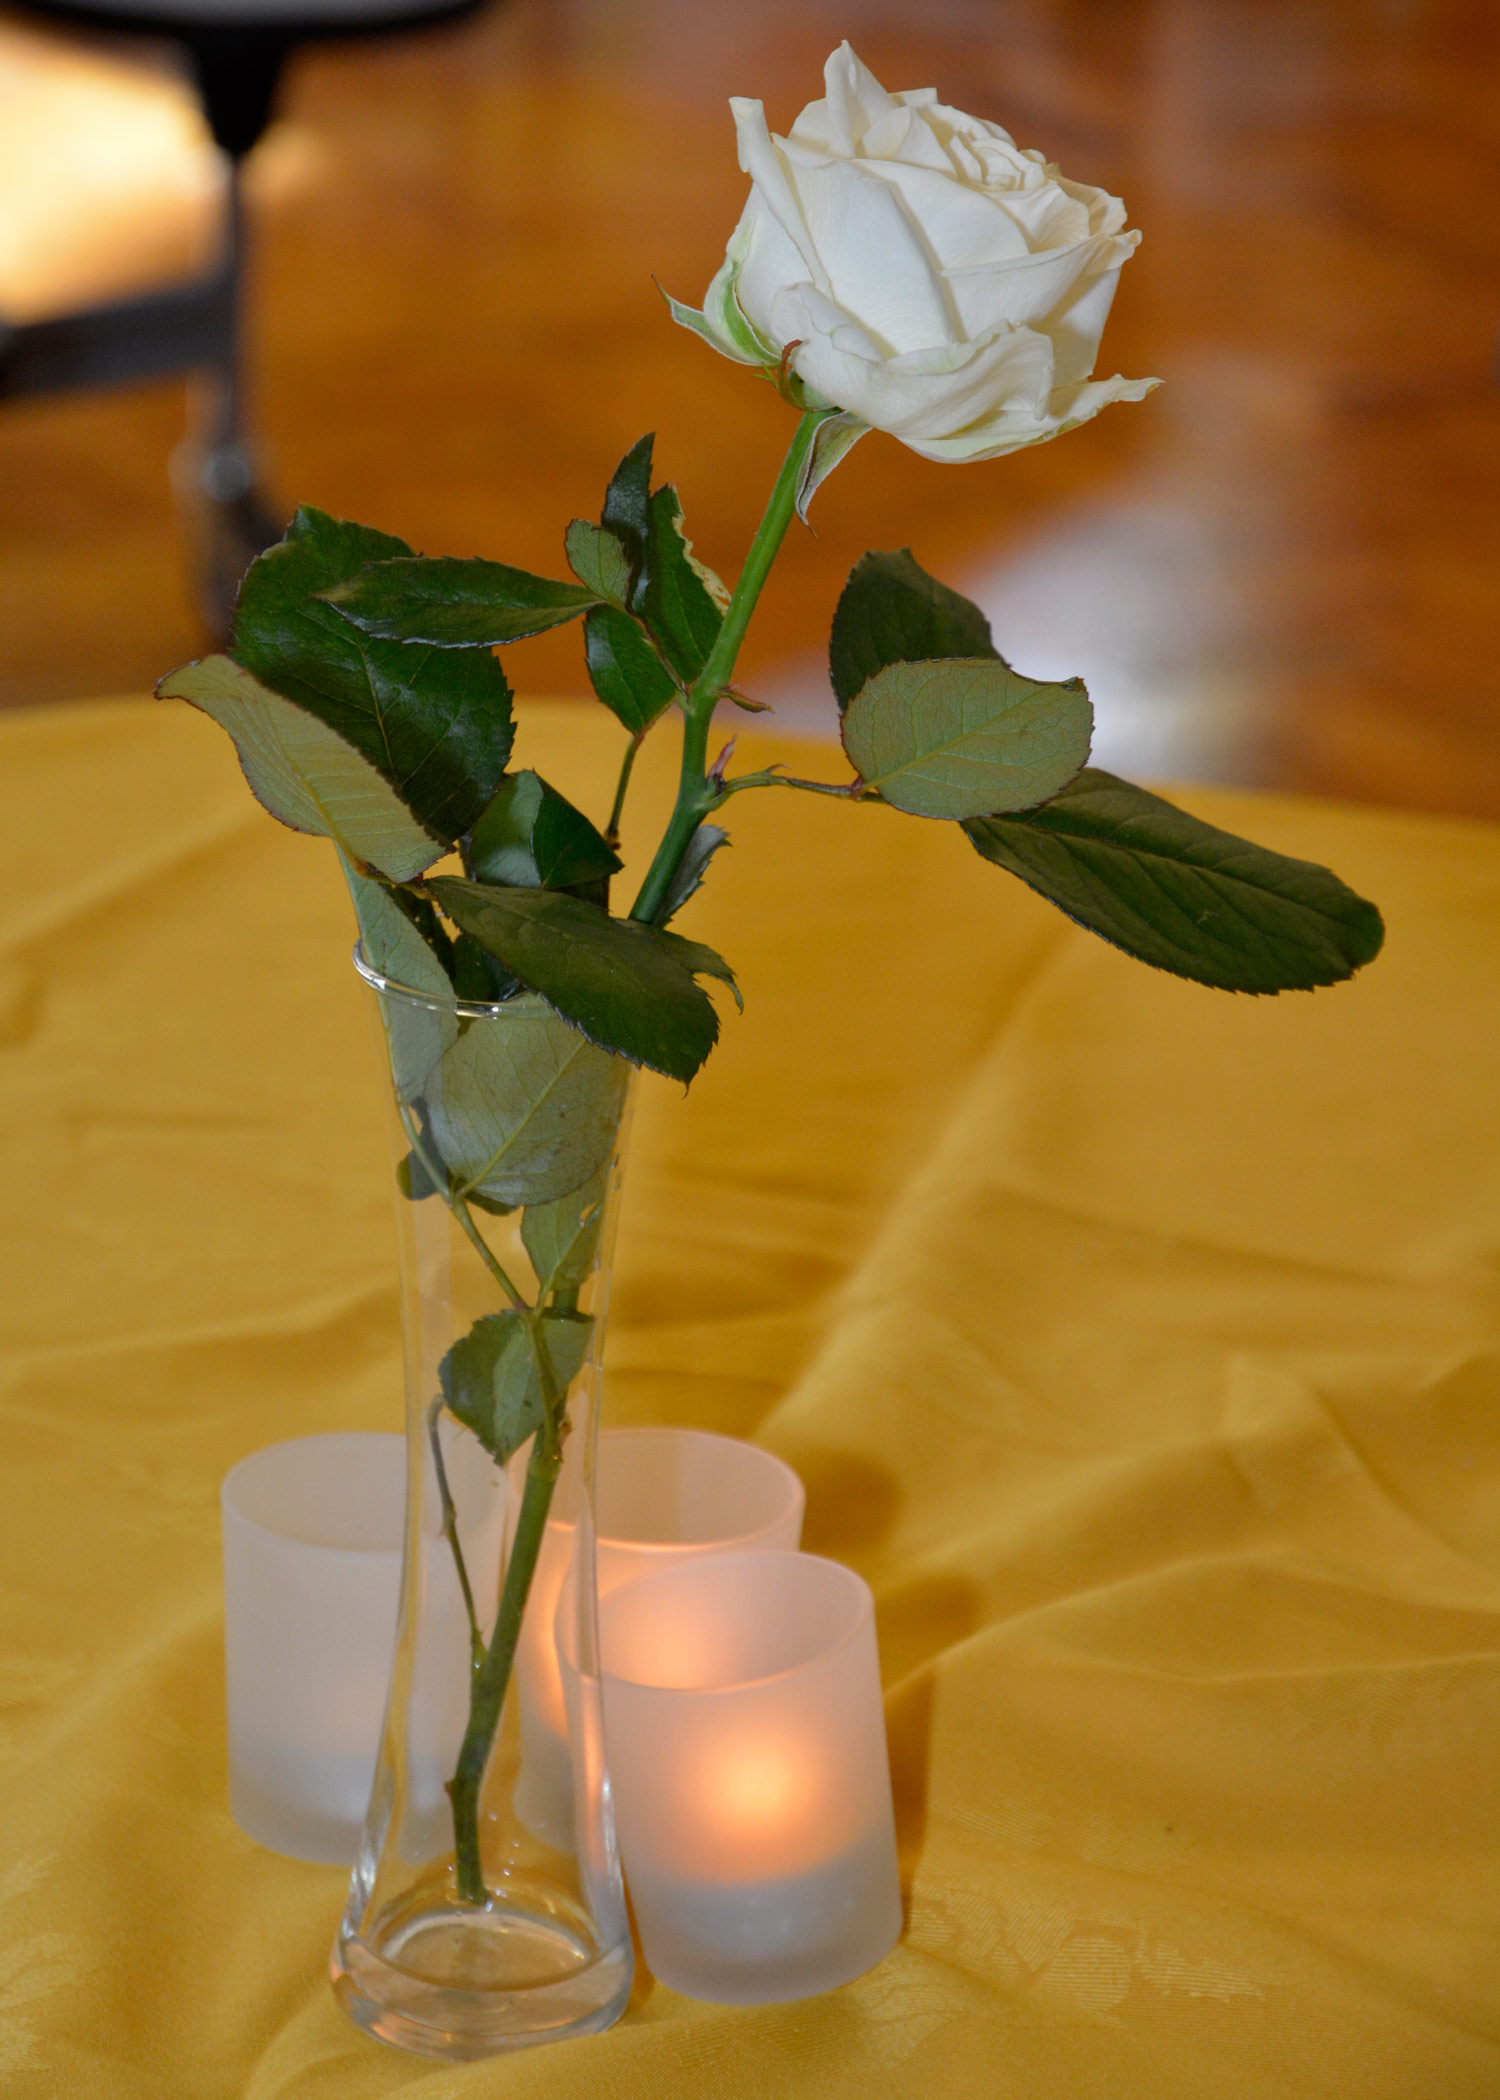 Photo: A White Rose at our 50th Anniversary Garden Party, October 2014